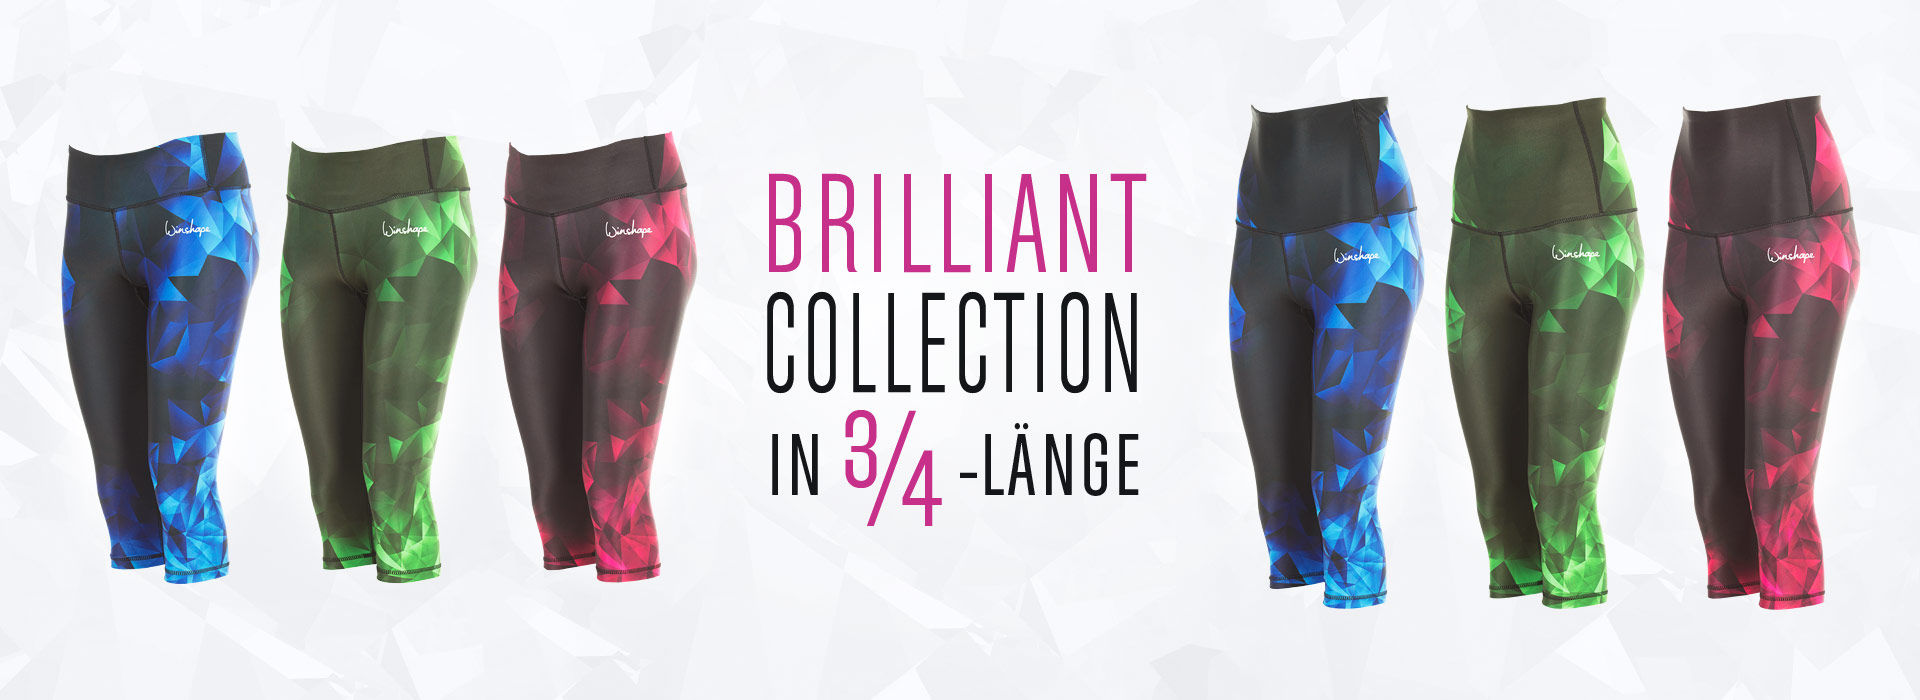 Brilliant Collection in 3/4-Länge